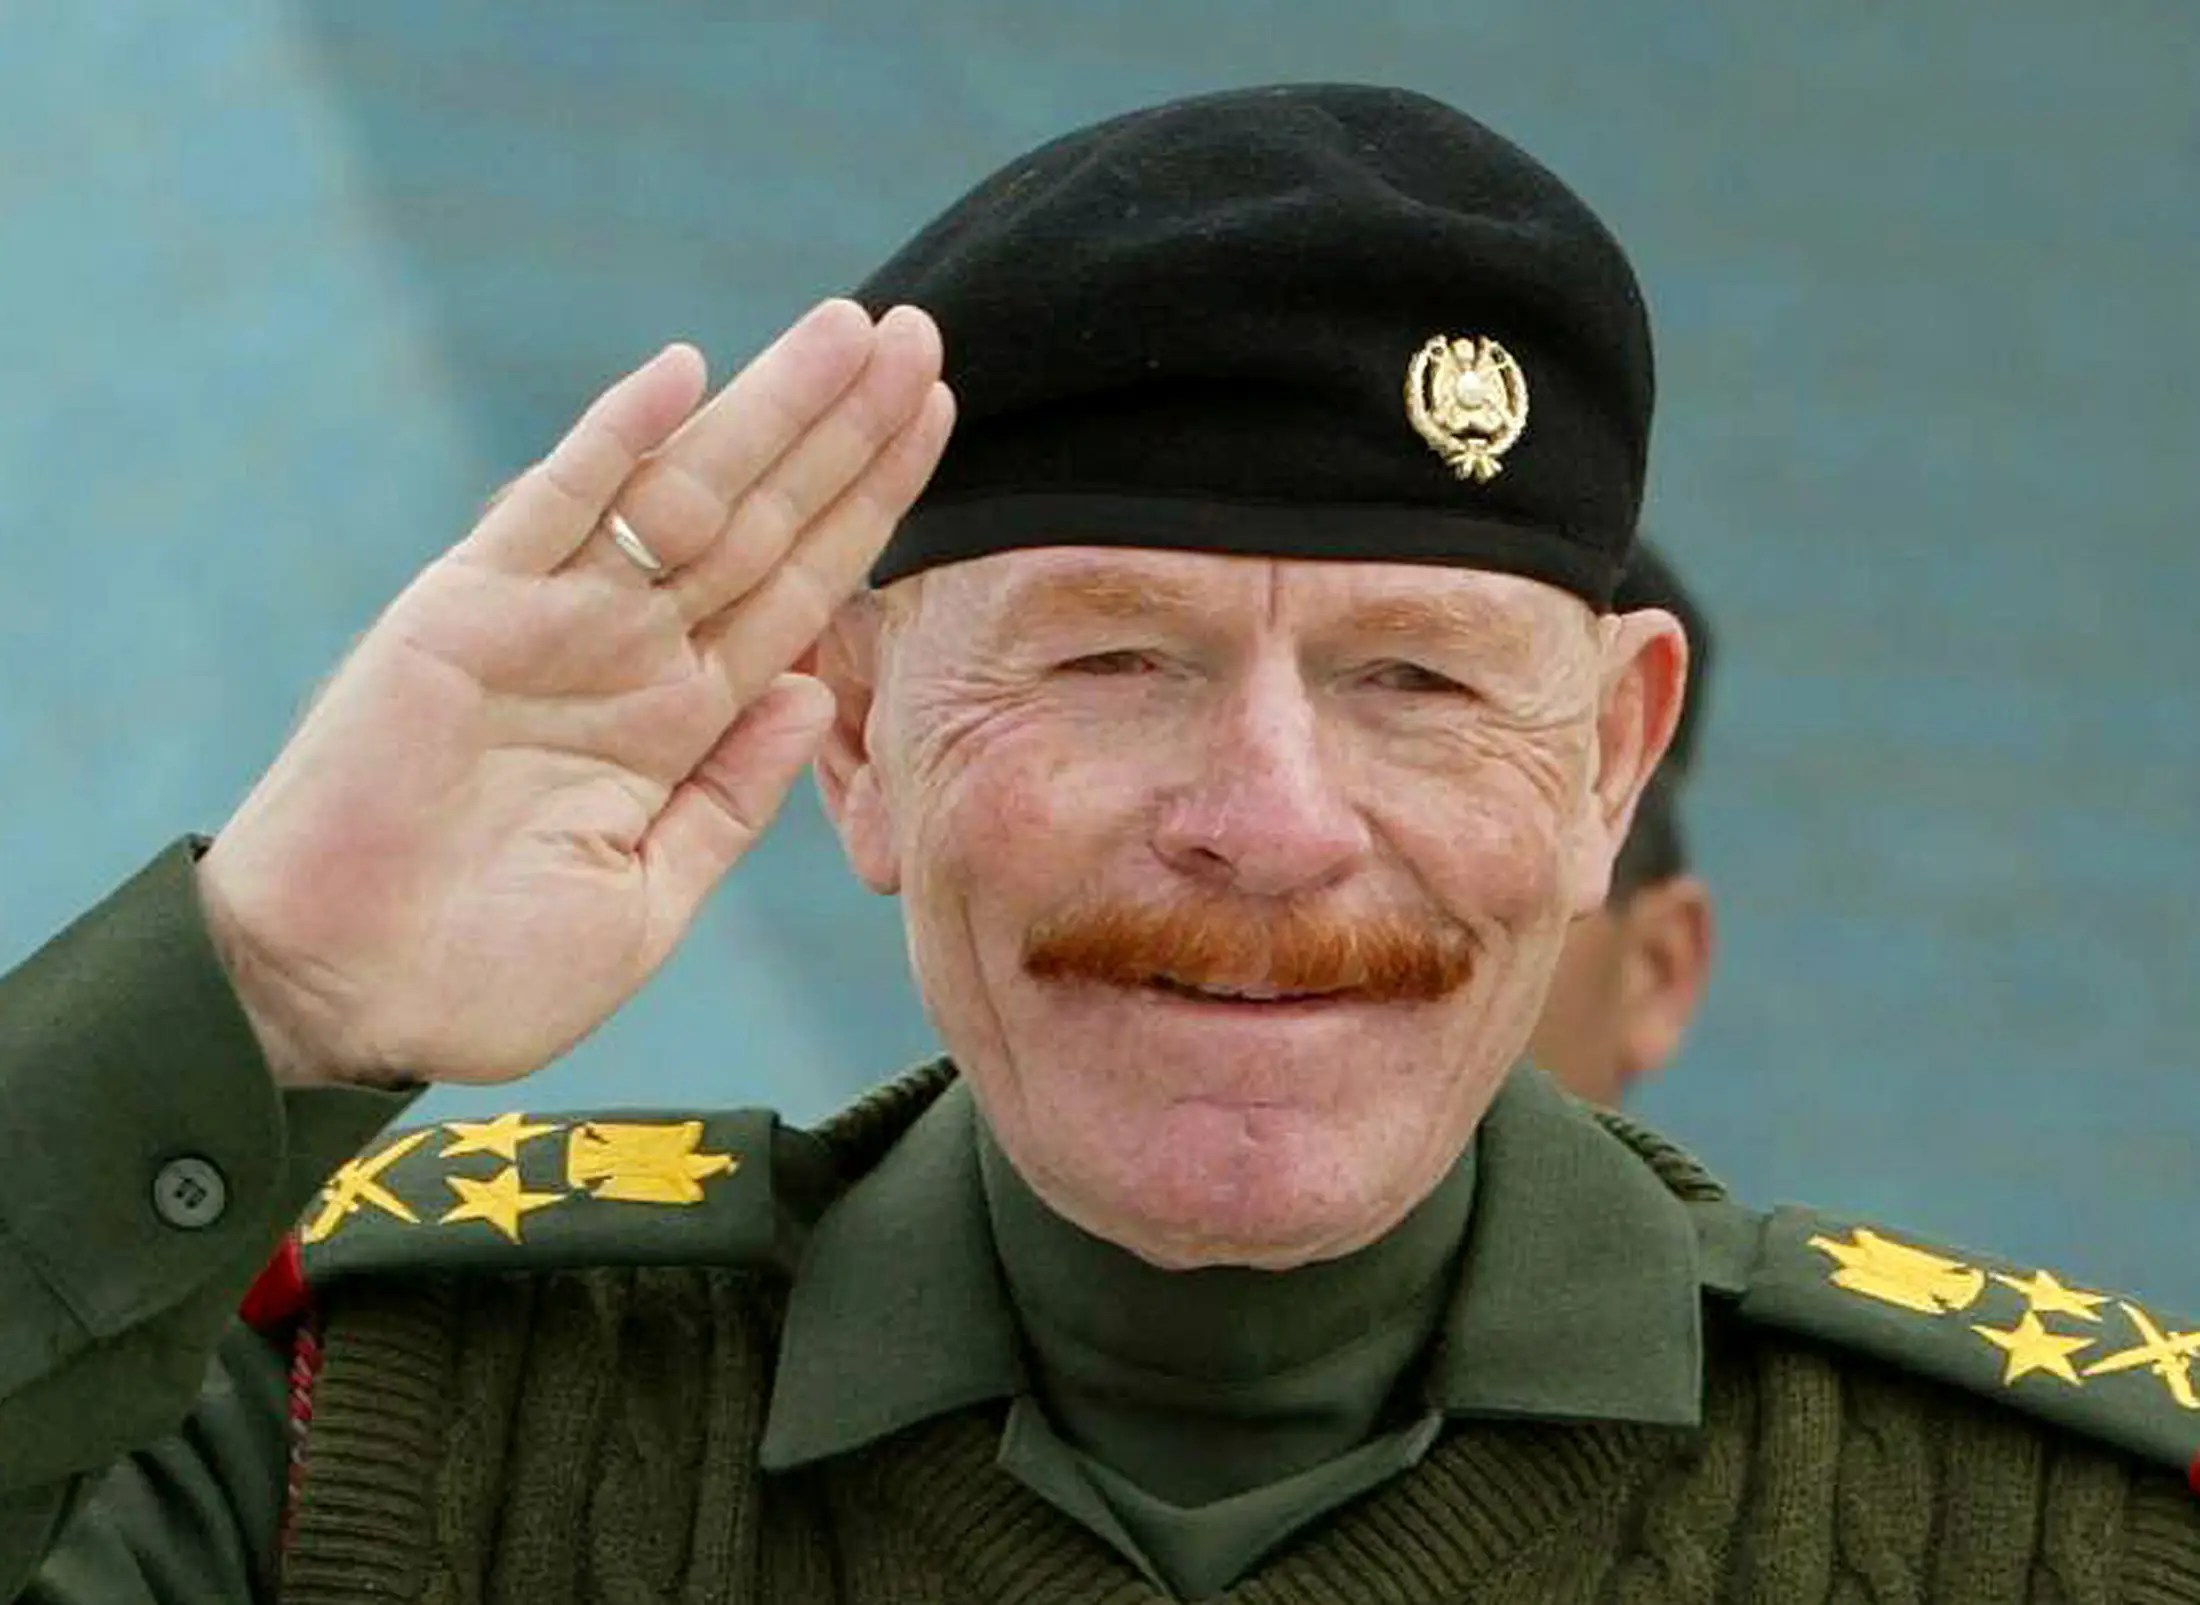 Izzat Ibrahim al-Douri was the king of spades